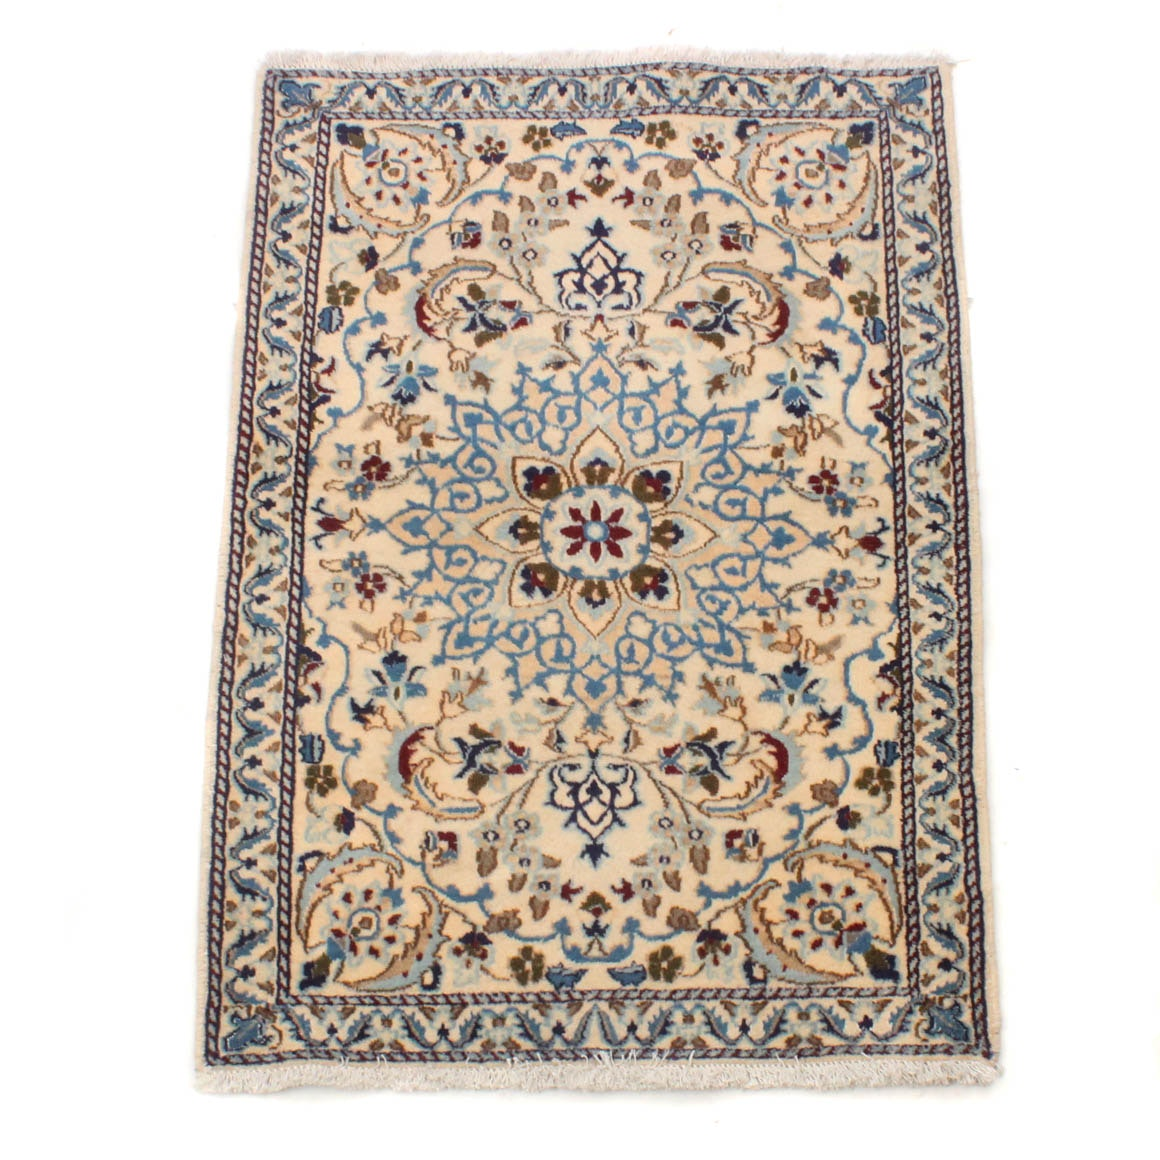 3' x 5' Hand-Knotted Persian Kashmir Rug